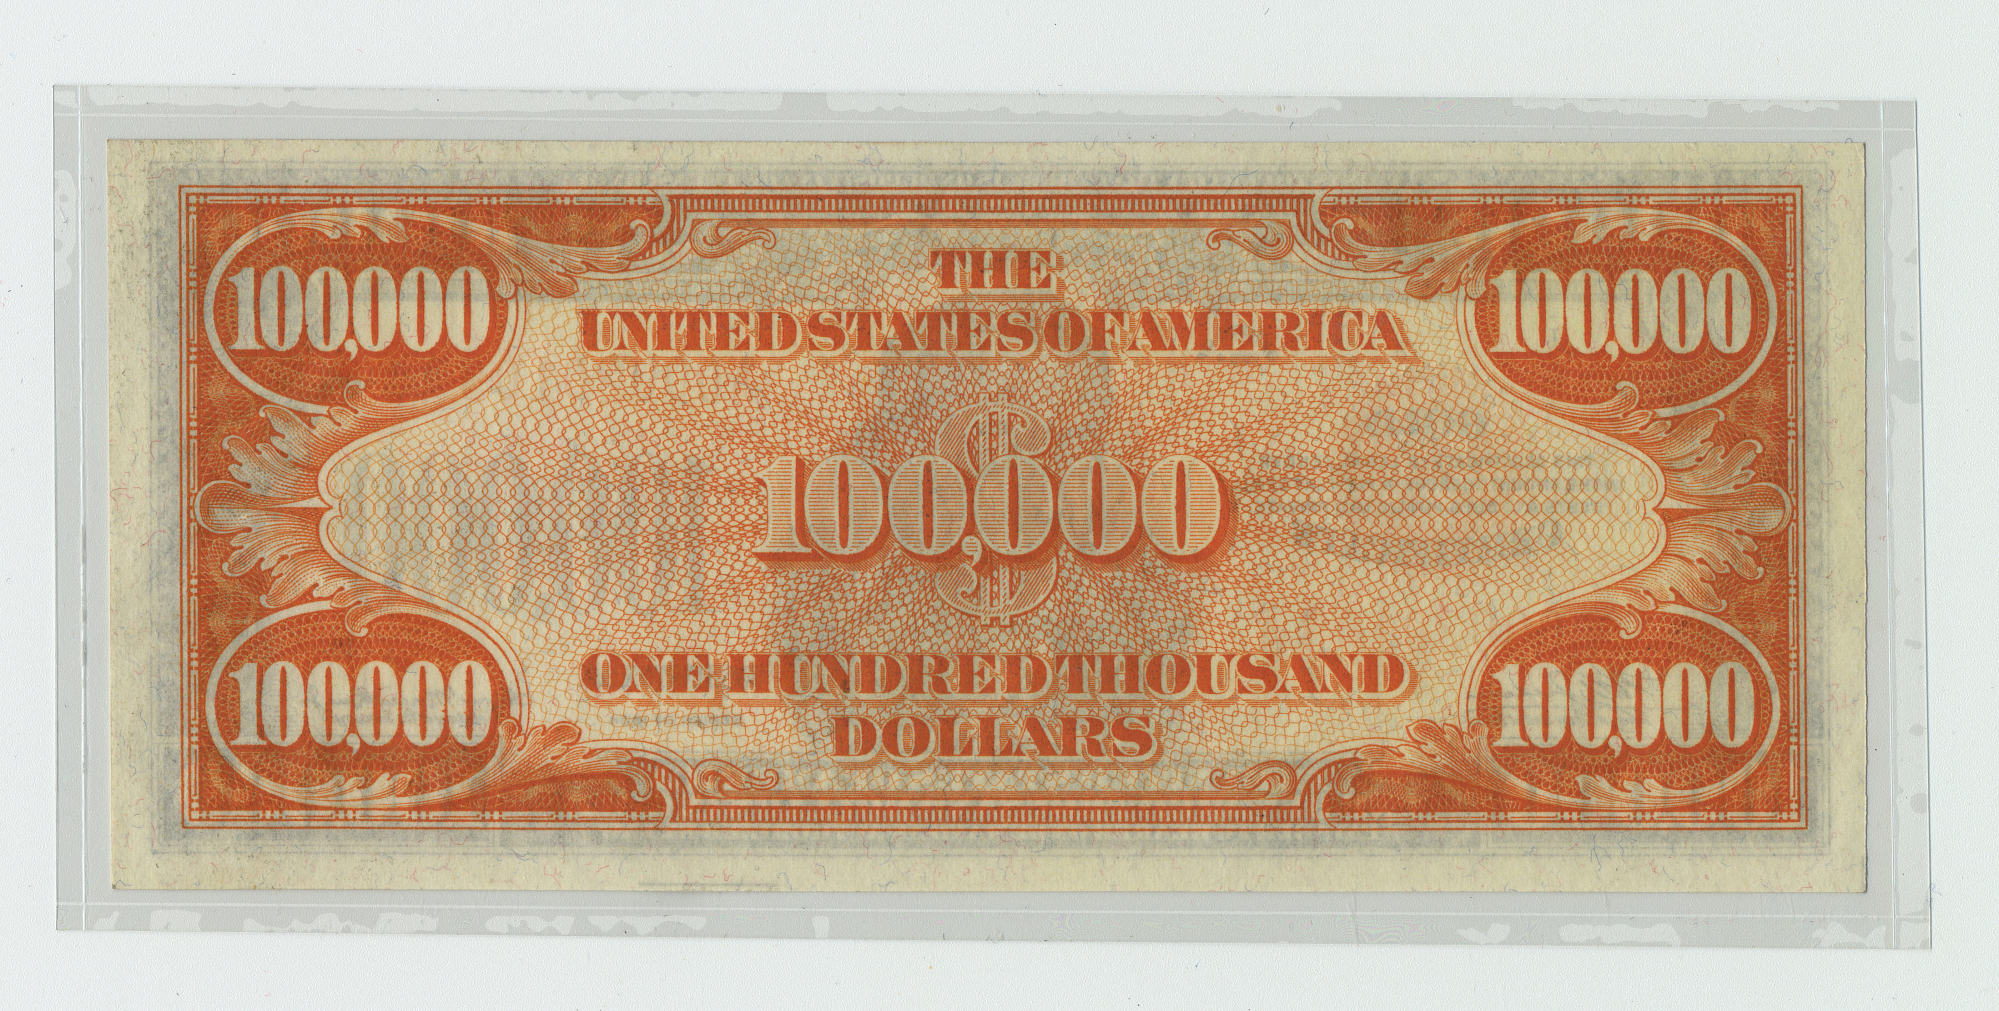 100,000 Dollars, Gold Certificate, United States, 1934